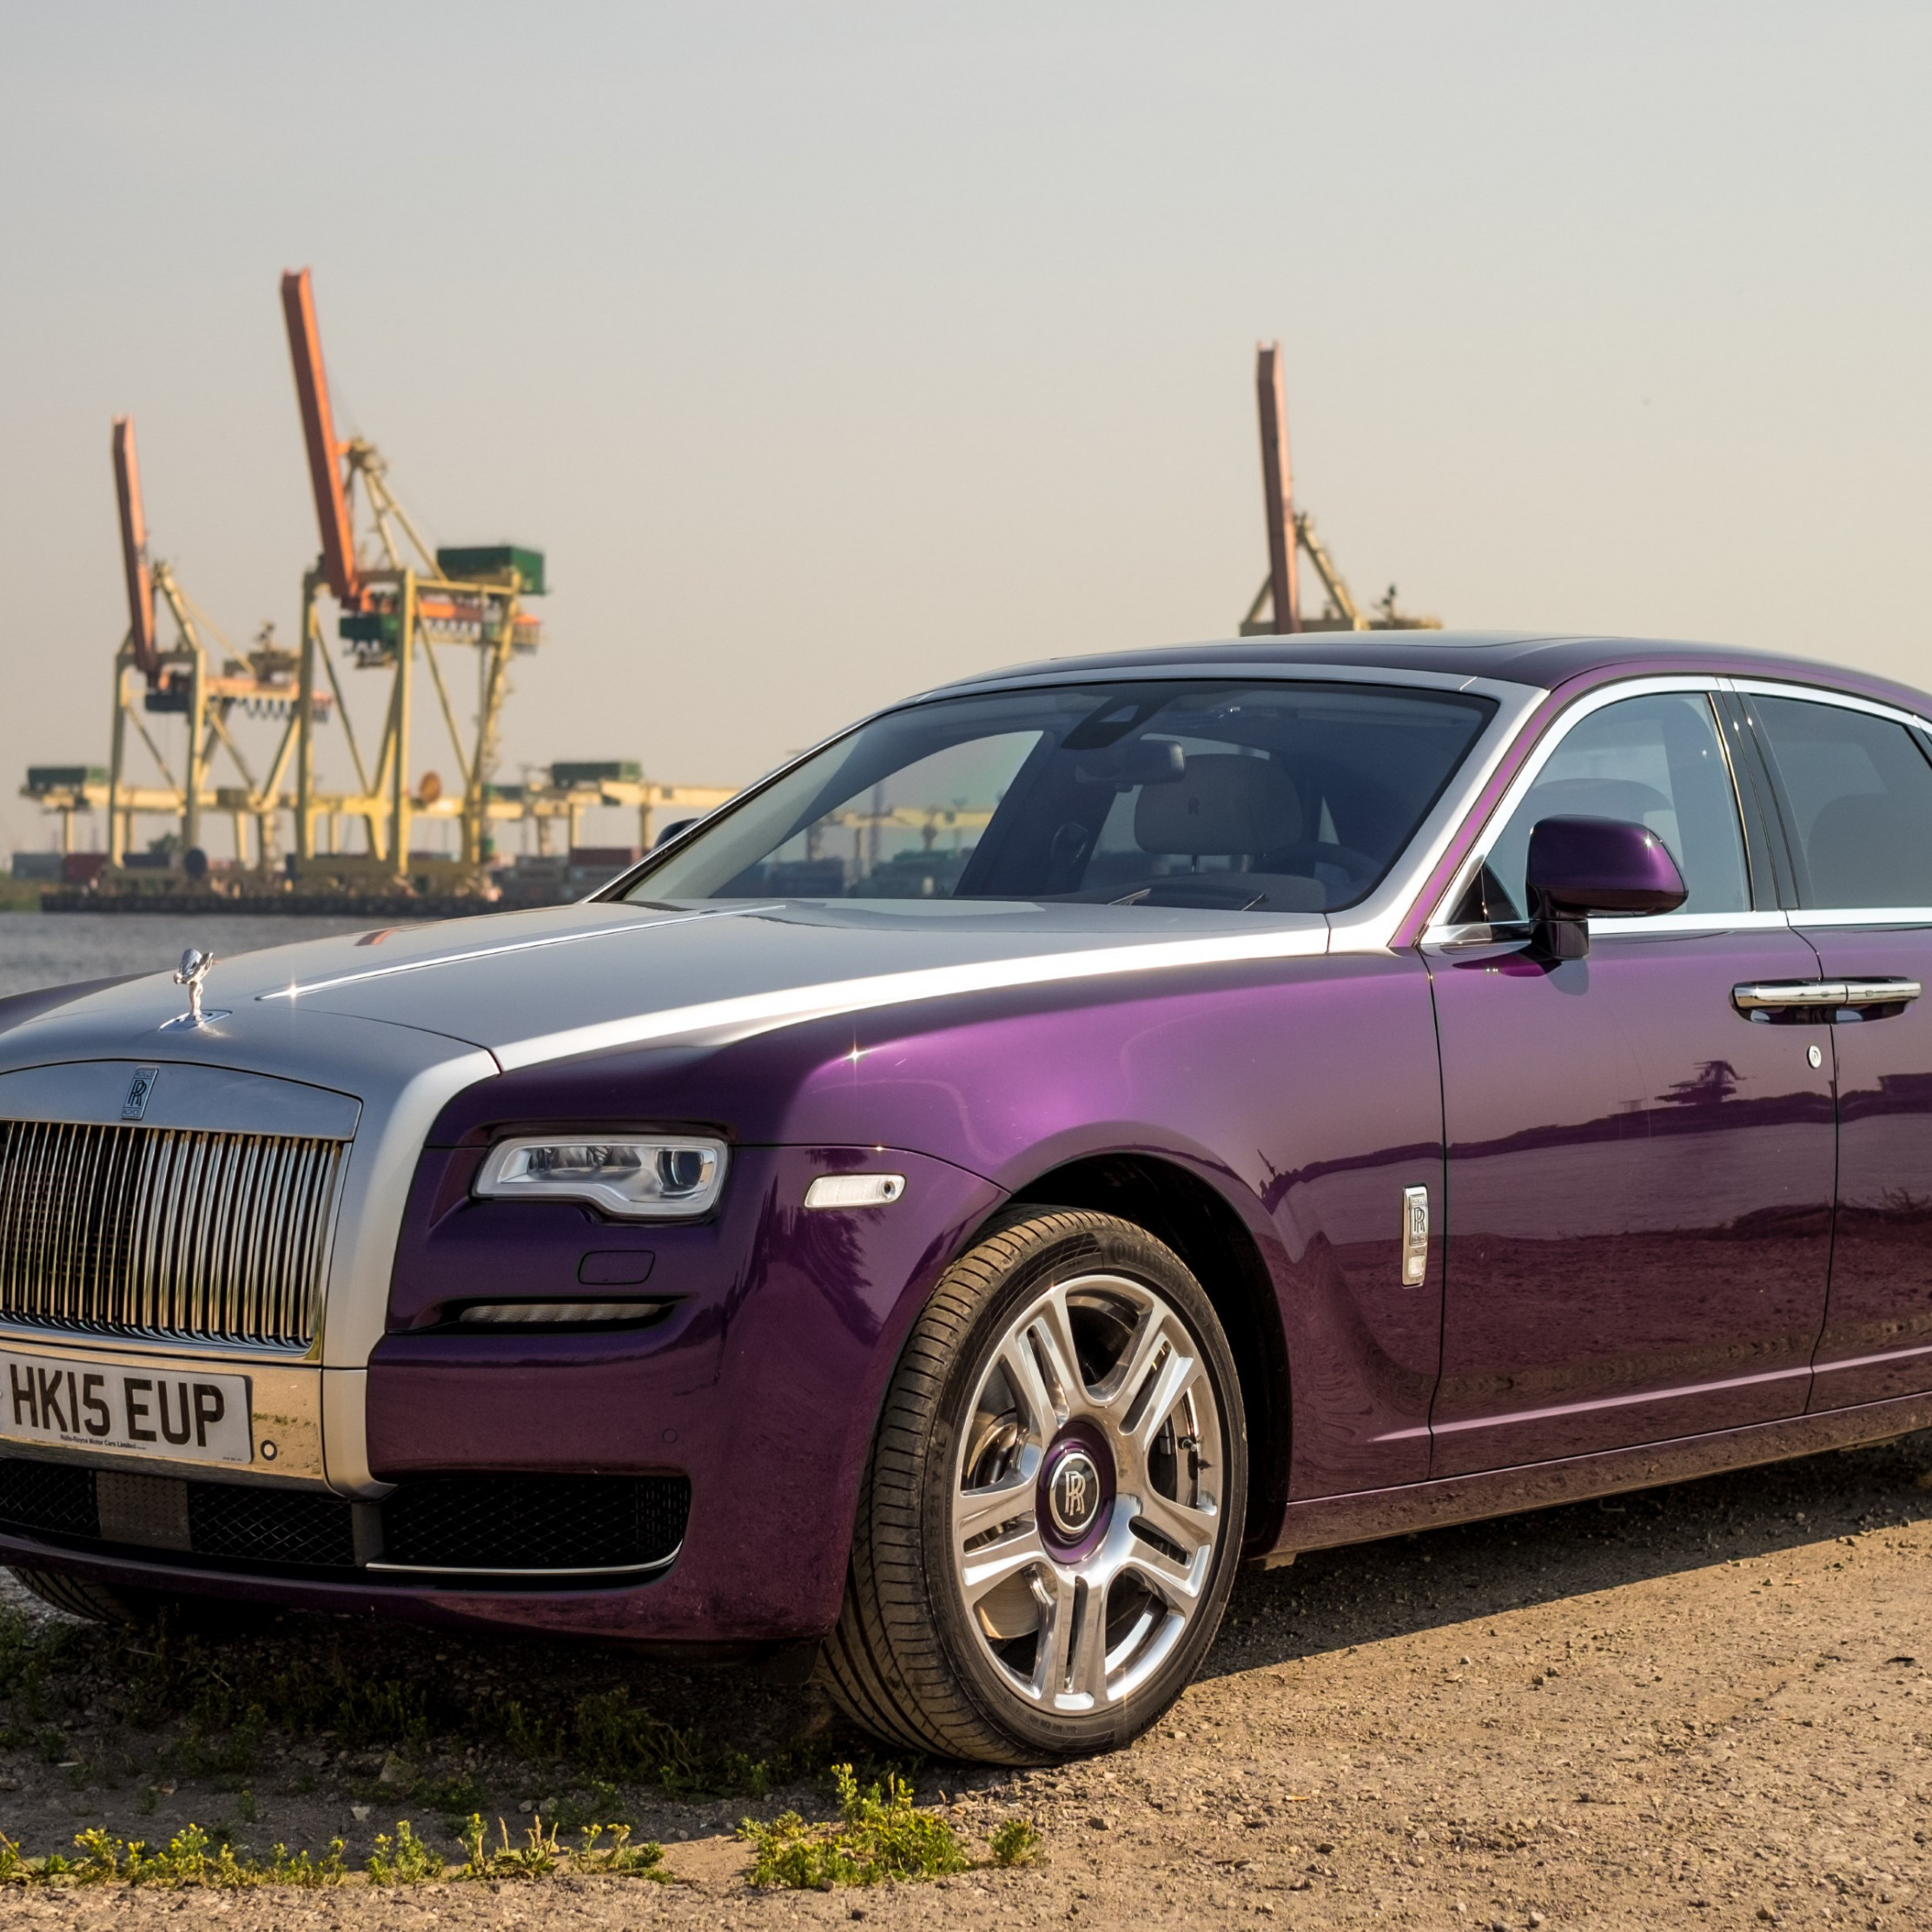 Rolls Royce Ghost wallpaper 2224x2224